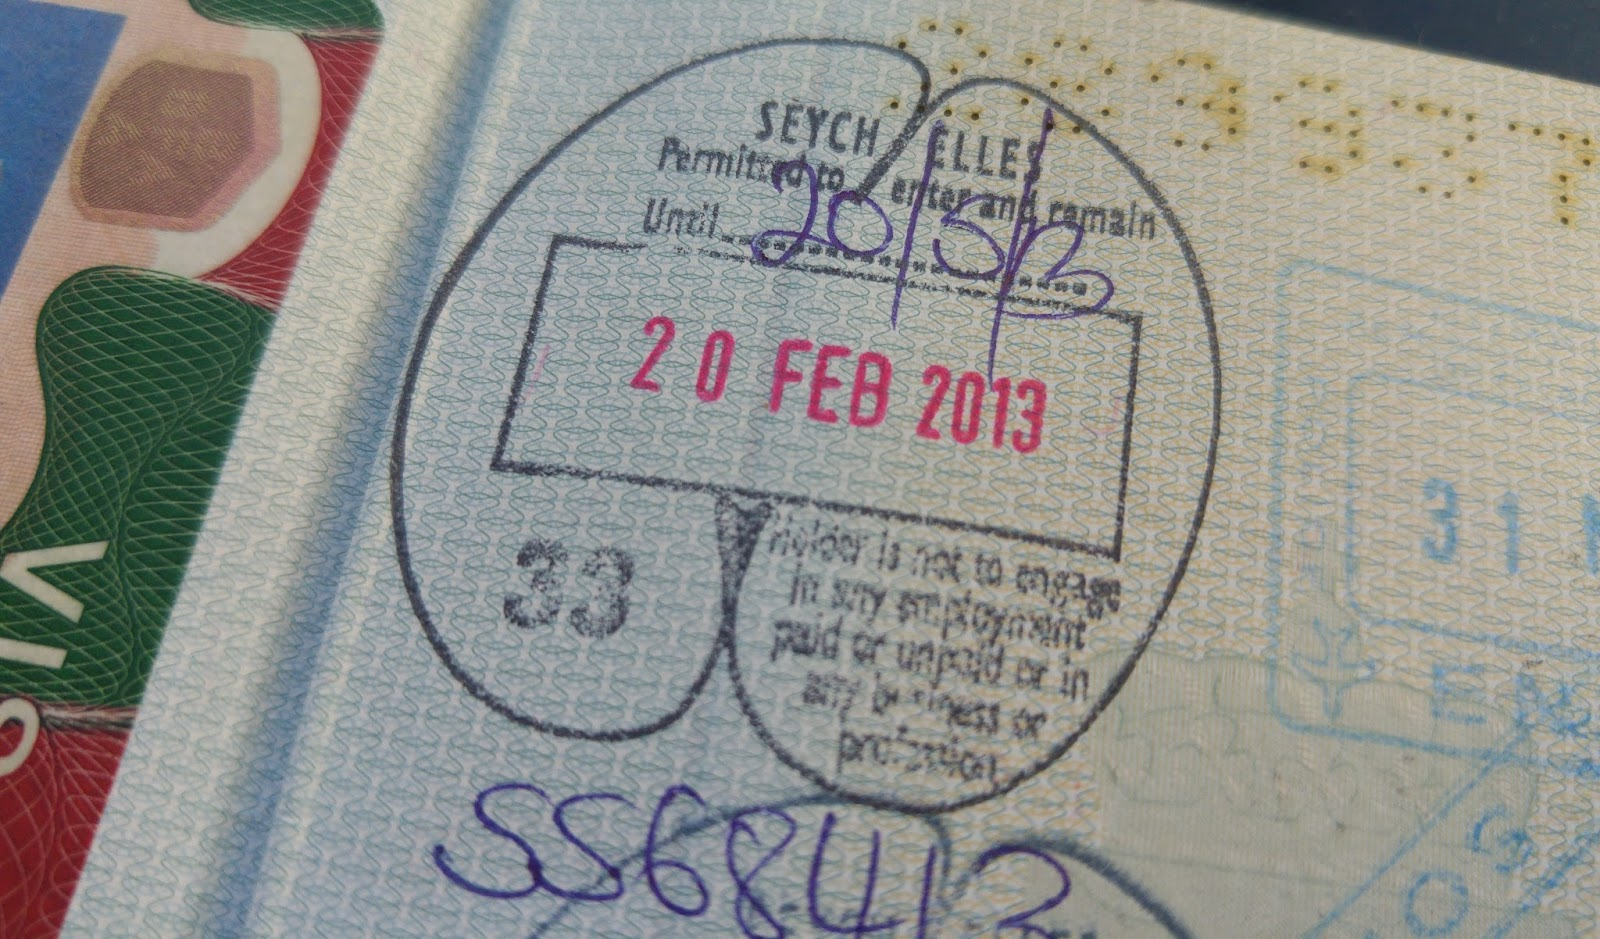 The Most Strangely Shaped Passport Stamp I Have Seen Thanks For Creativity SEYCHELLES 38